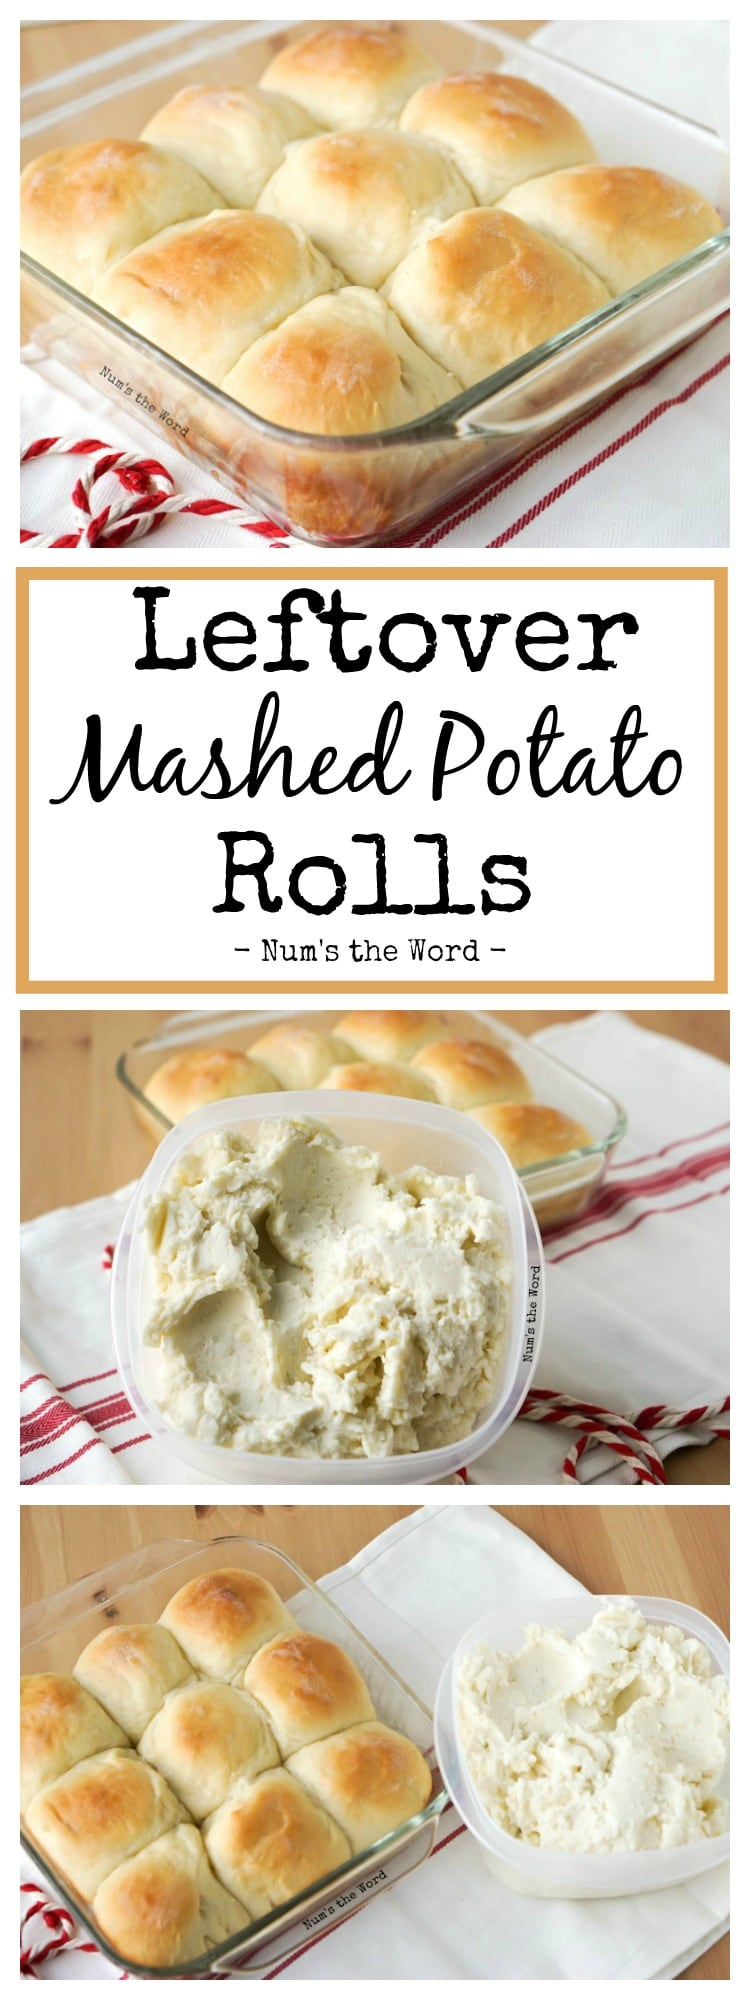 Leftover Mashed Potato Rolls